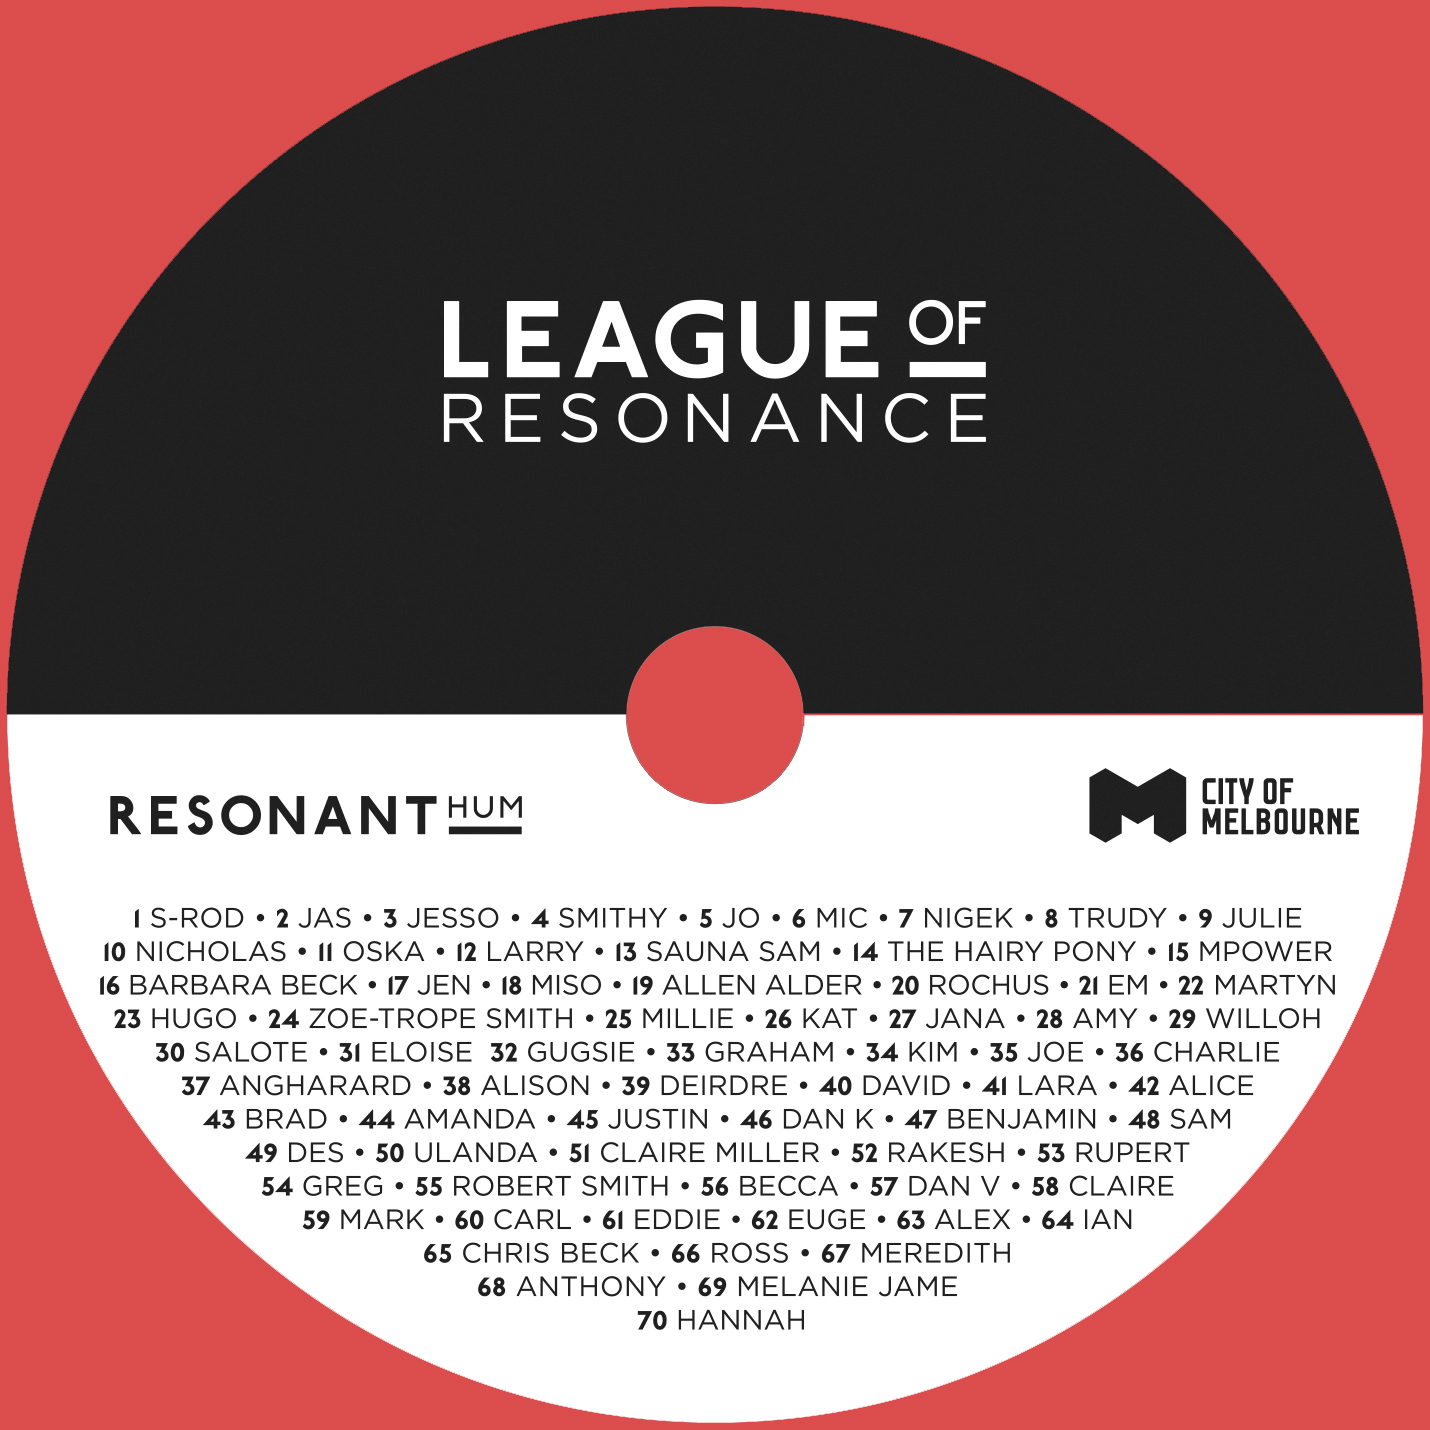 league of resonance CD artwork with #db4d4d background.jpg